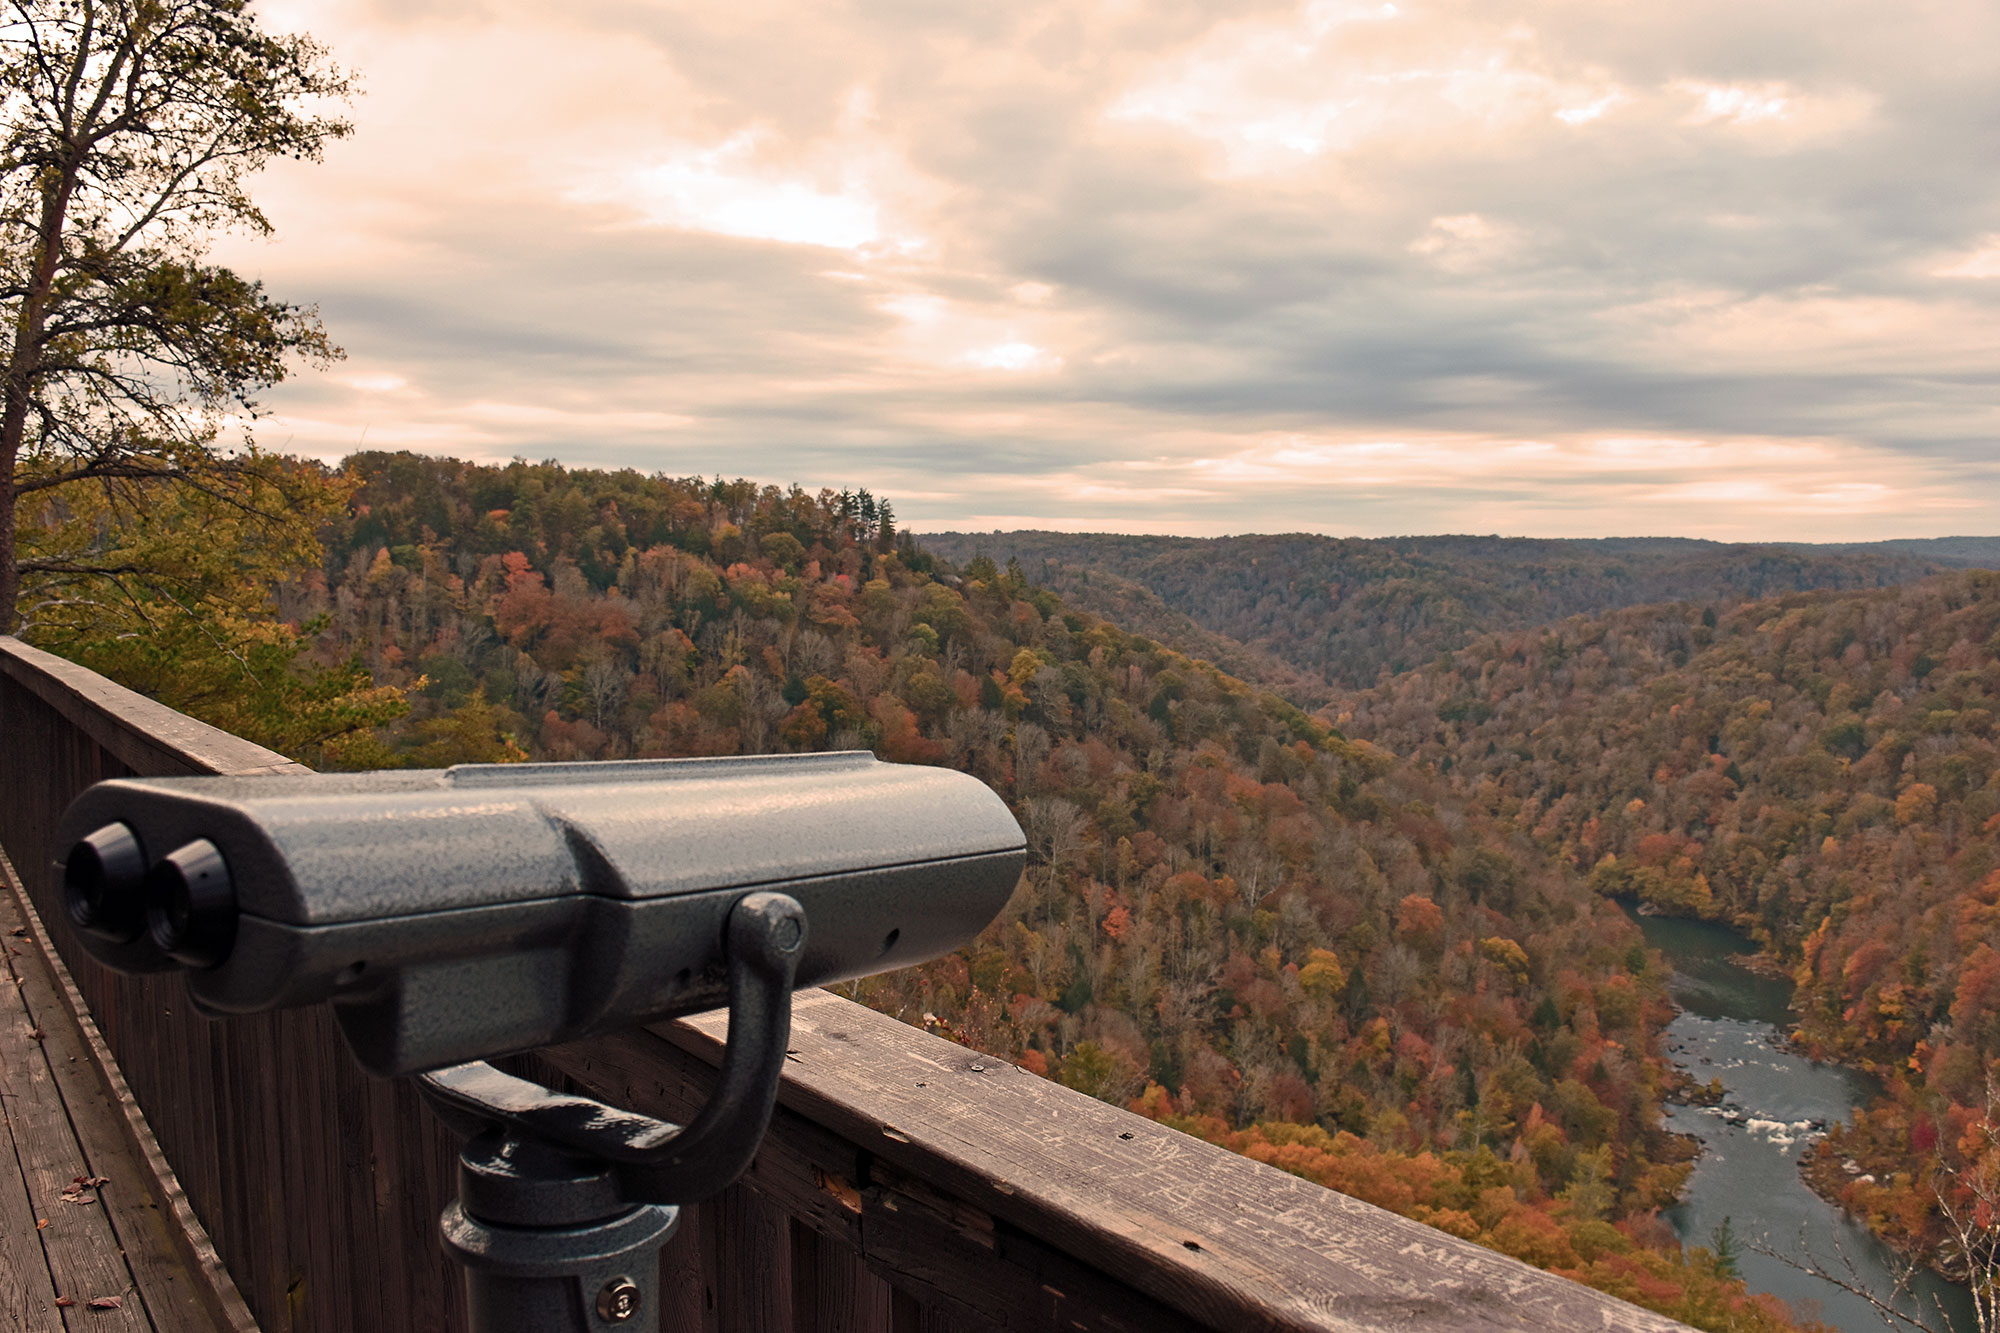 Viewfinder points over the overlook towards the river and multi-colored forests below